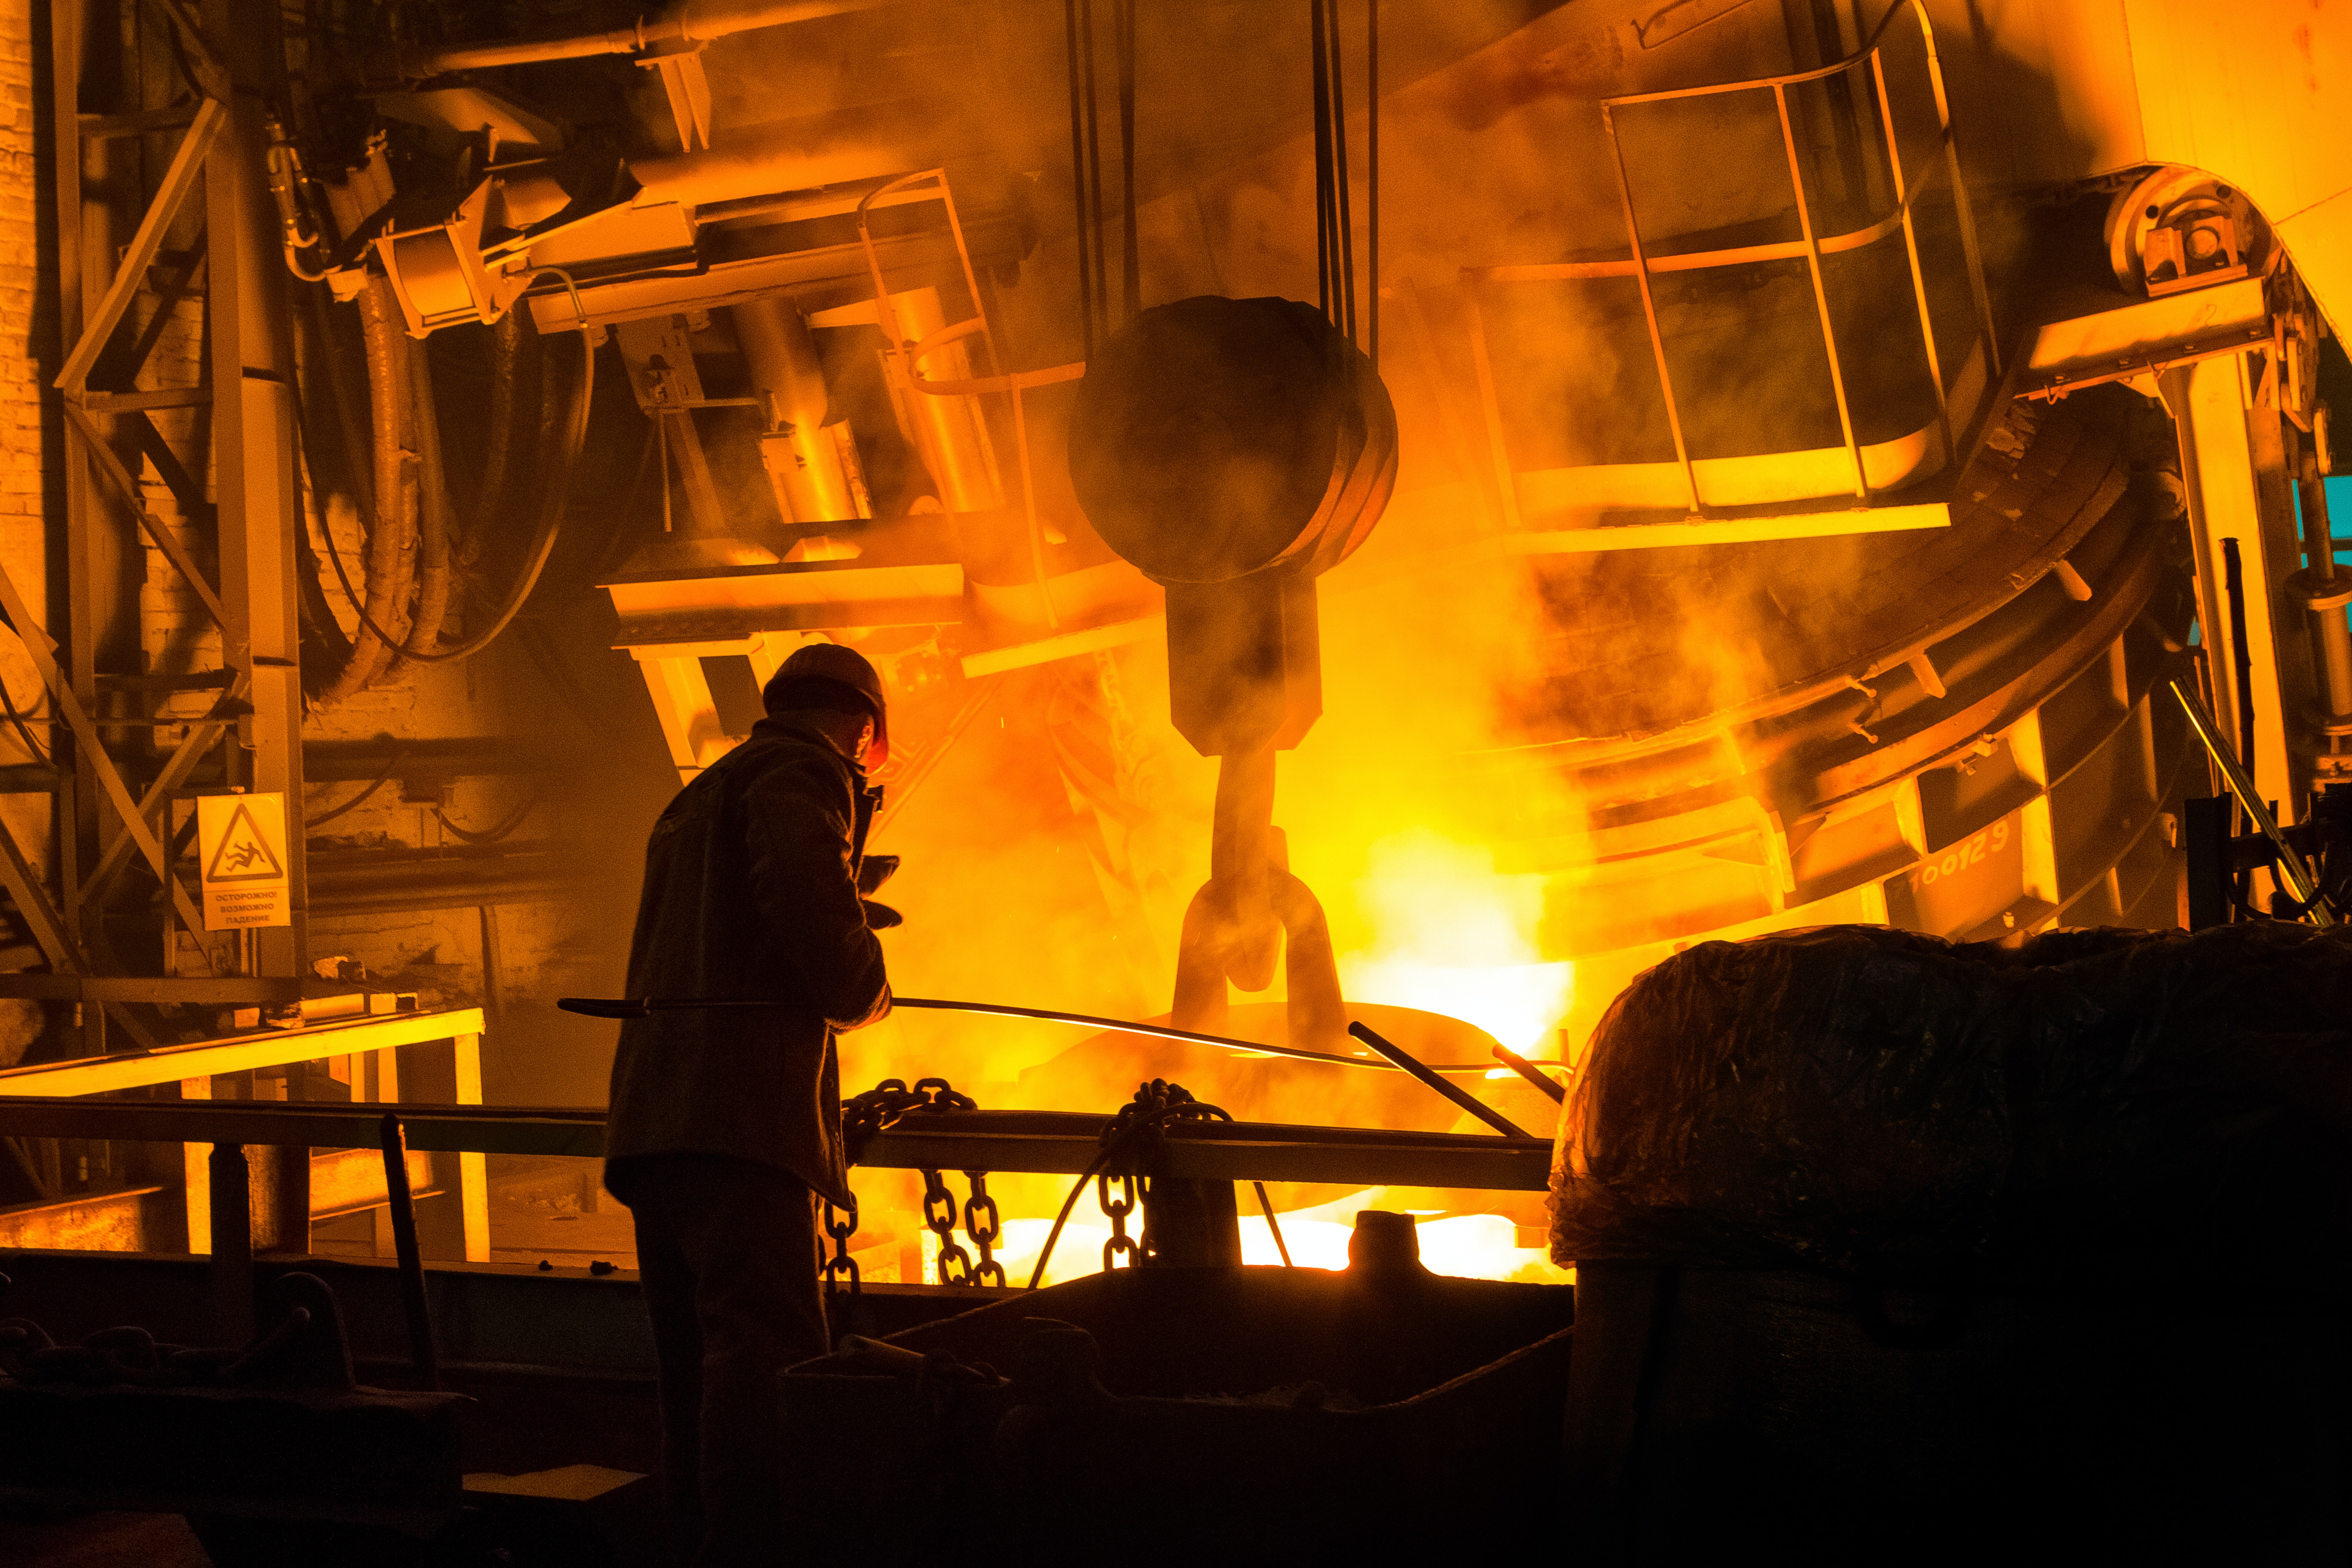 Tenaris to expand scope of U.S. melt shop with M investment